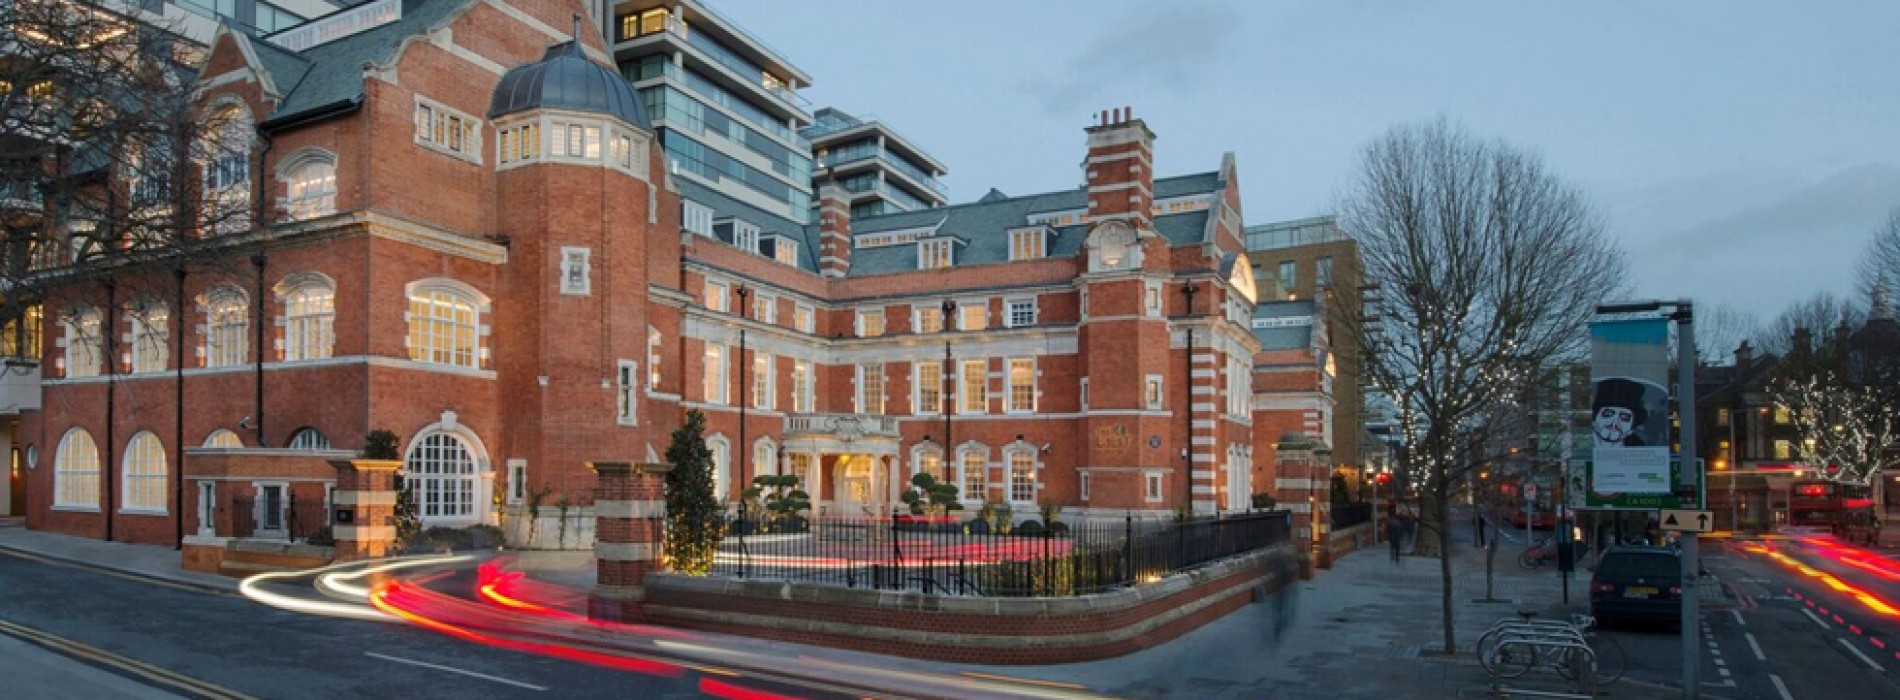 Small Luxury hotels of the World™ welcomes The LaLiT London